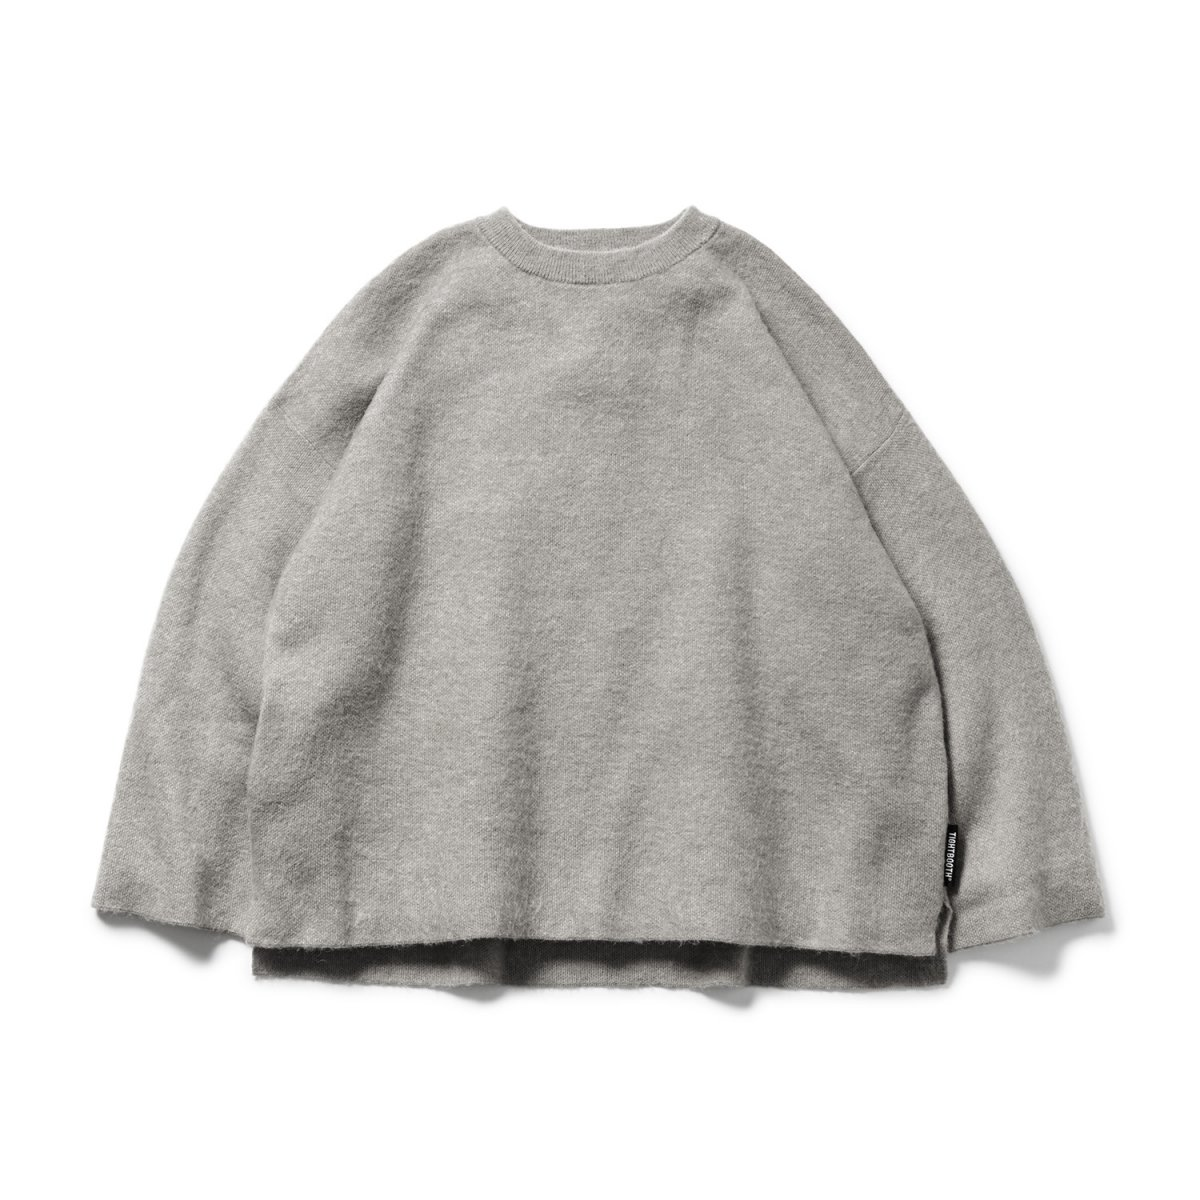 <img class='new_mark_img1' src='https://img.shop-pro.jp/img/new/icons8.gif' style='border:none;display:inline;margin:0px;padding:0px;width:auto;' />【TBPR】Mohair Sweater (Gray)                           </a>             <span class=